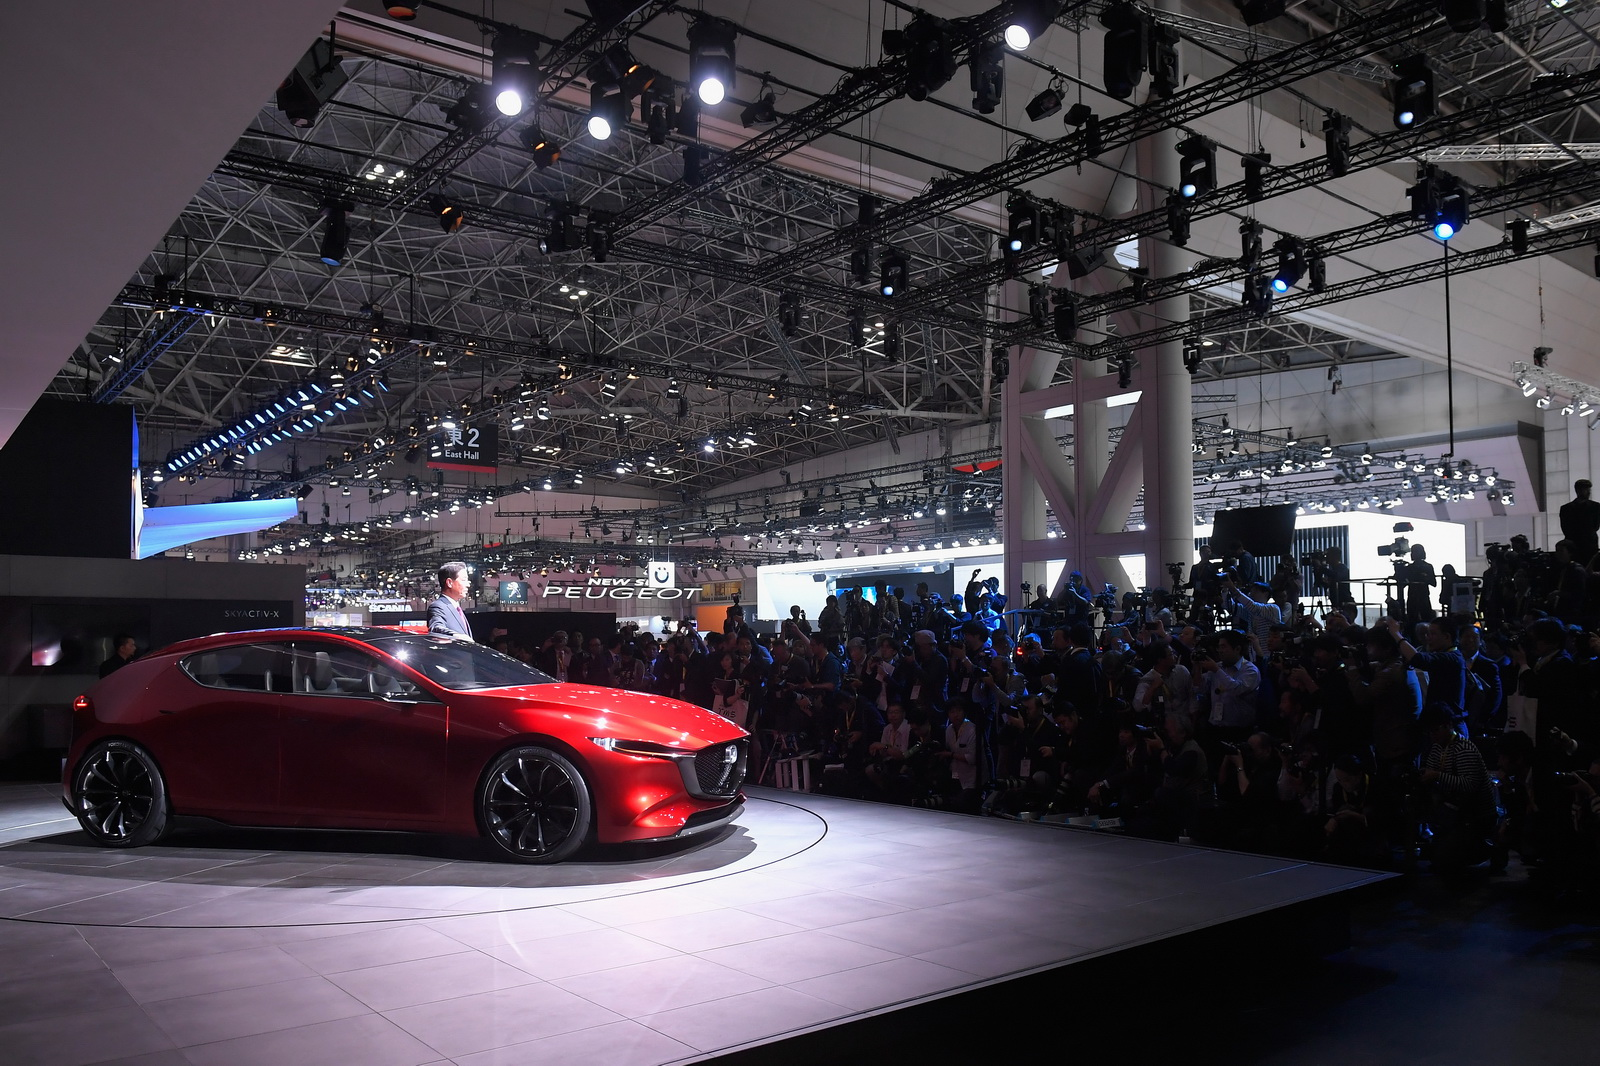 TOKYO, JAPAN - OCTOBER 25:  Mazda Motor Co CEO Masamichi Kogai poses with Mazda Kai Concept during a press conference at the Mazda Motor Co booth during the Tokyo Motor Show at Tokyo Big Sight on October 25, 2017 in Tokyo, Japan.  (Photo by Koki Nagahama/Getty Images for Mazda Motor Co) *** Local Caption *** Masamichi Kogai